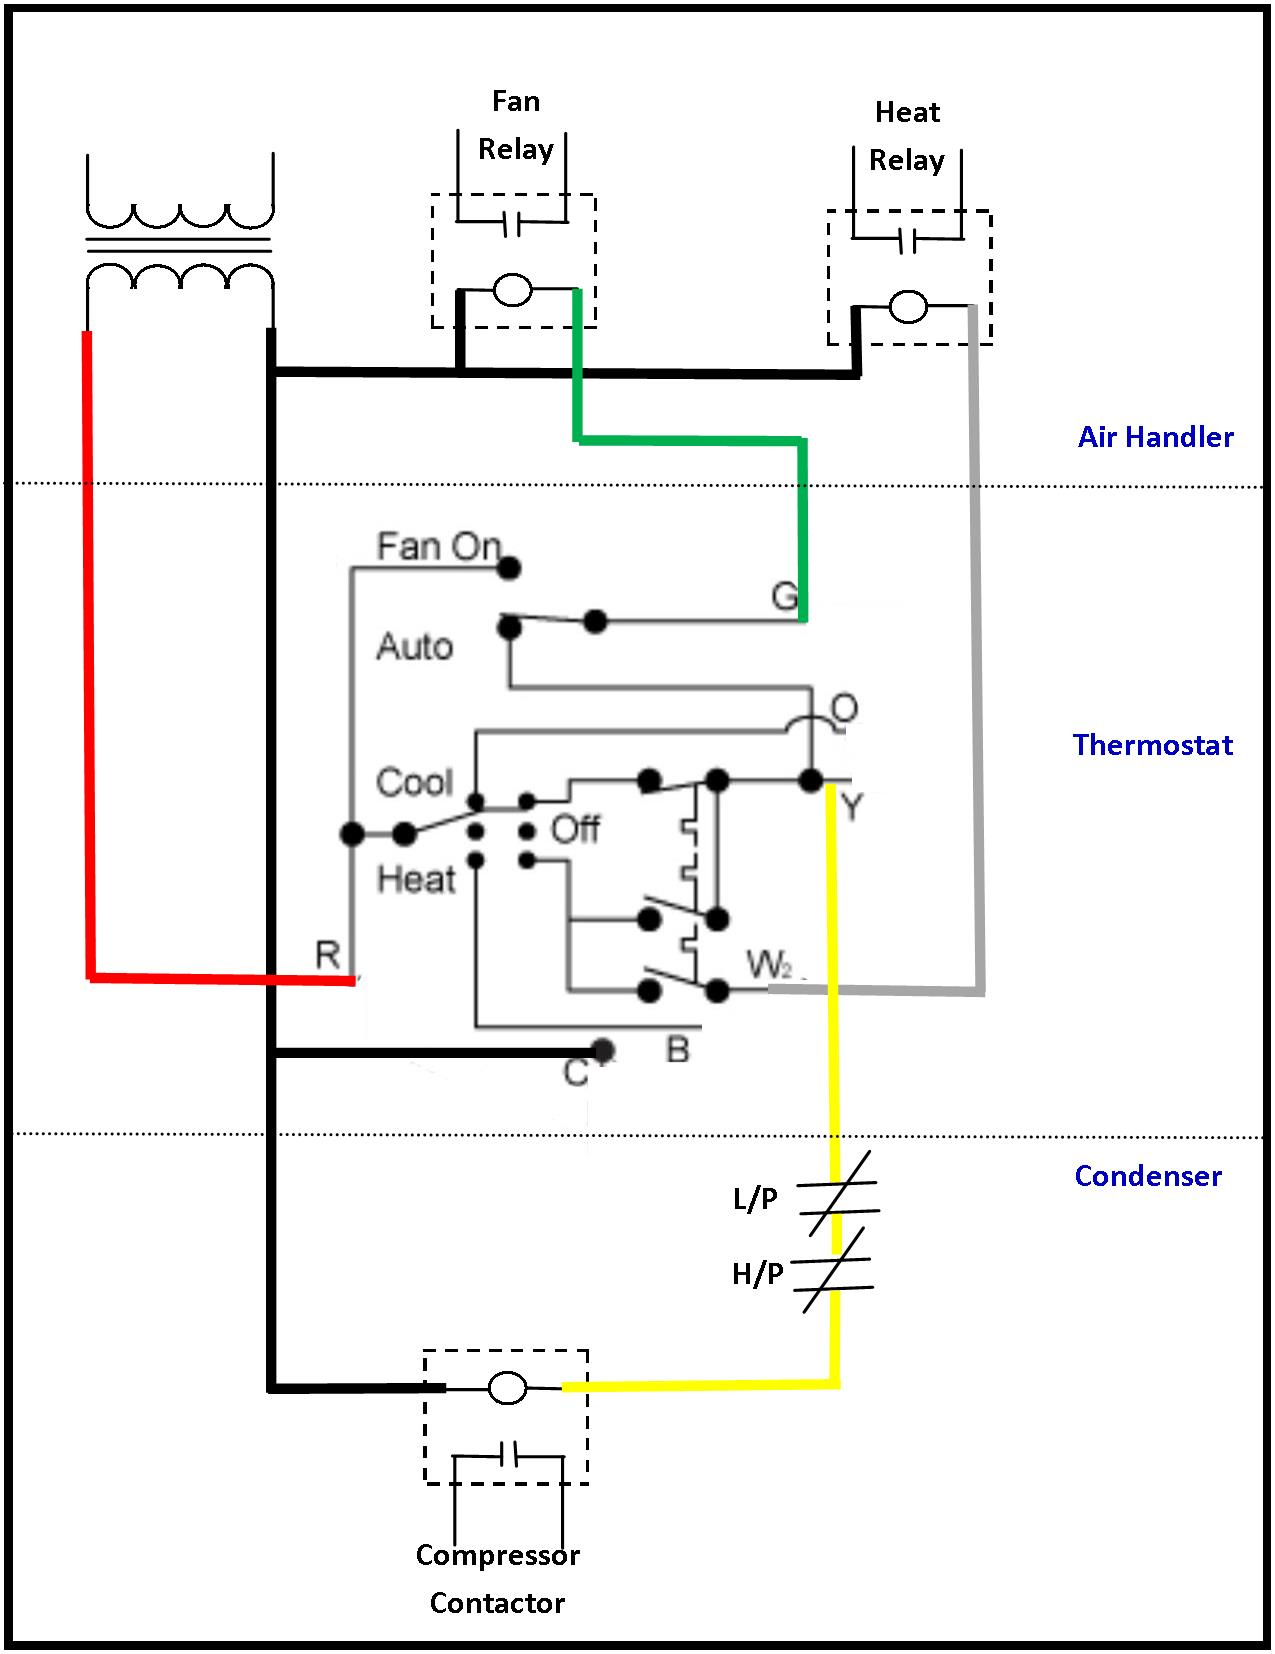 Hvac Control Wiring Diagram Relay - Armada Fuse Box Diagram -  heaterrelaay.tukune.jeanjaures37.fr | Hvac Control Wiring Circuit Diagram |  | Wiring Diagram Resource